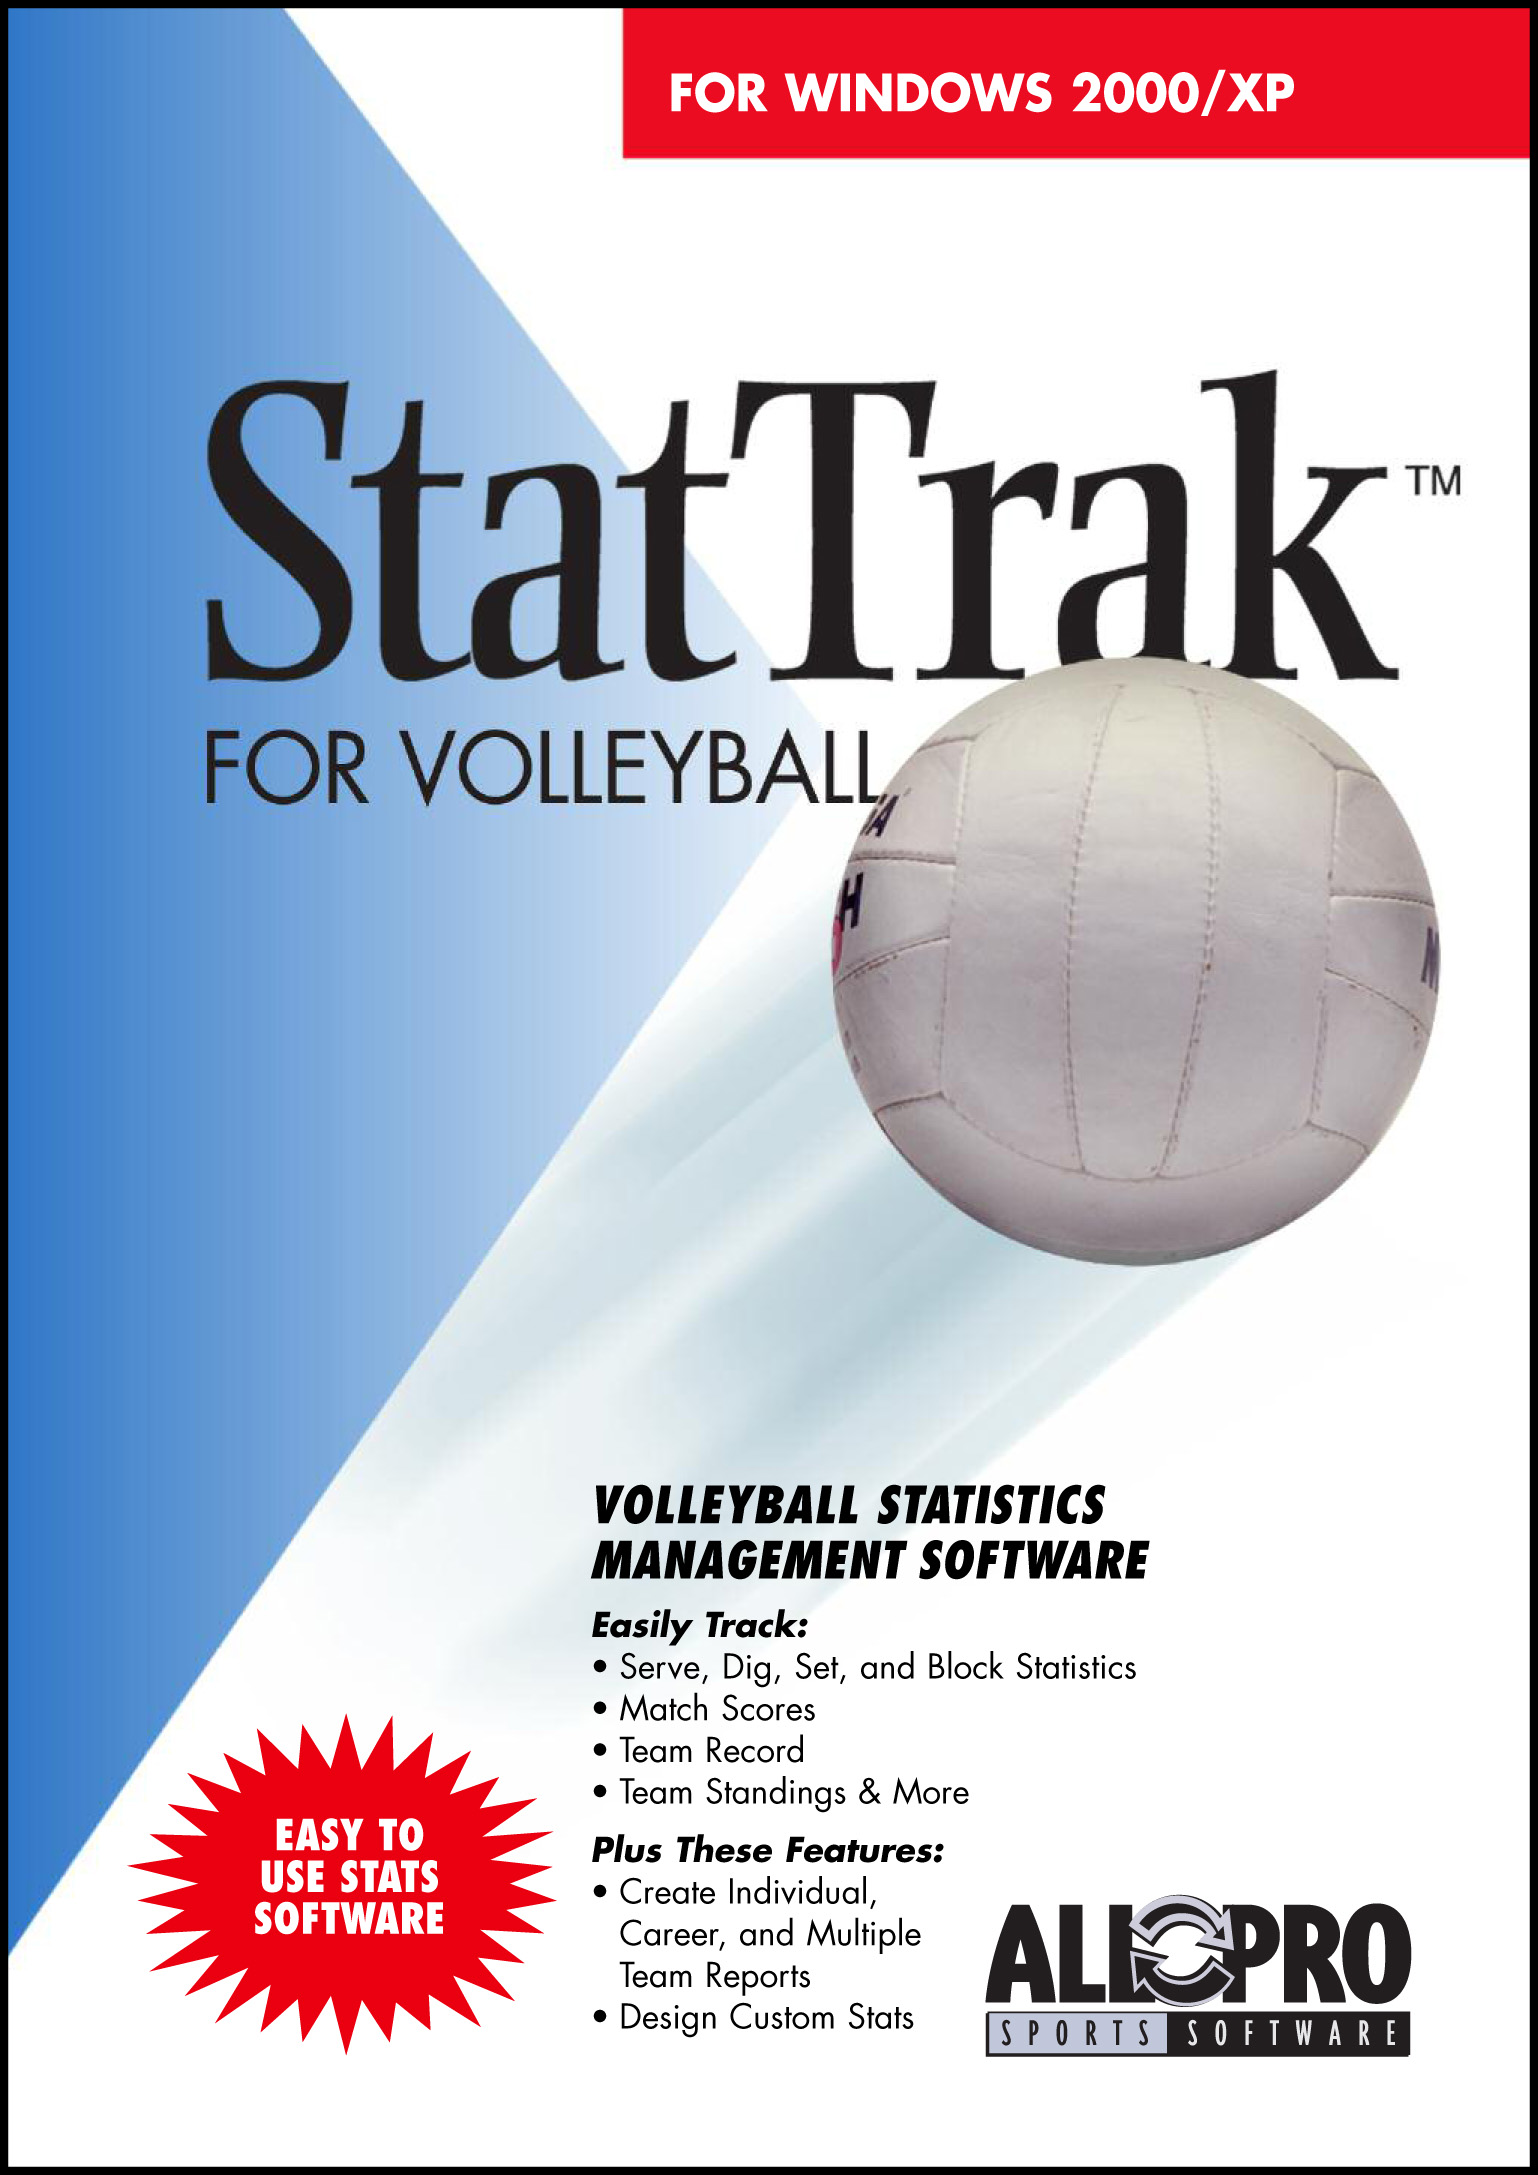 StatTrak for Volleyball